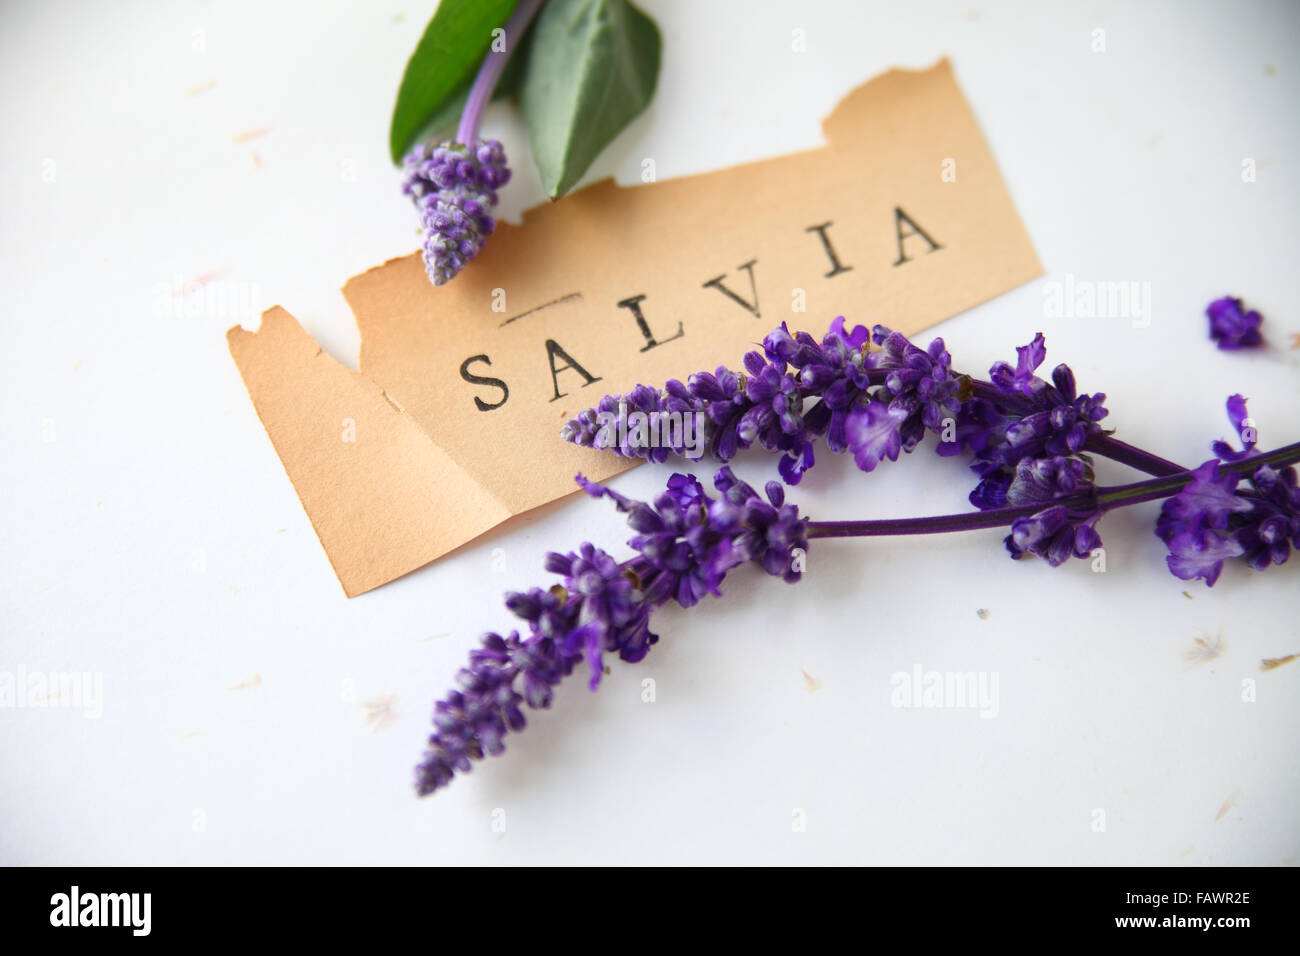 The word salvia on old torn paper with purple flowers - Stock Image